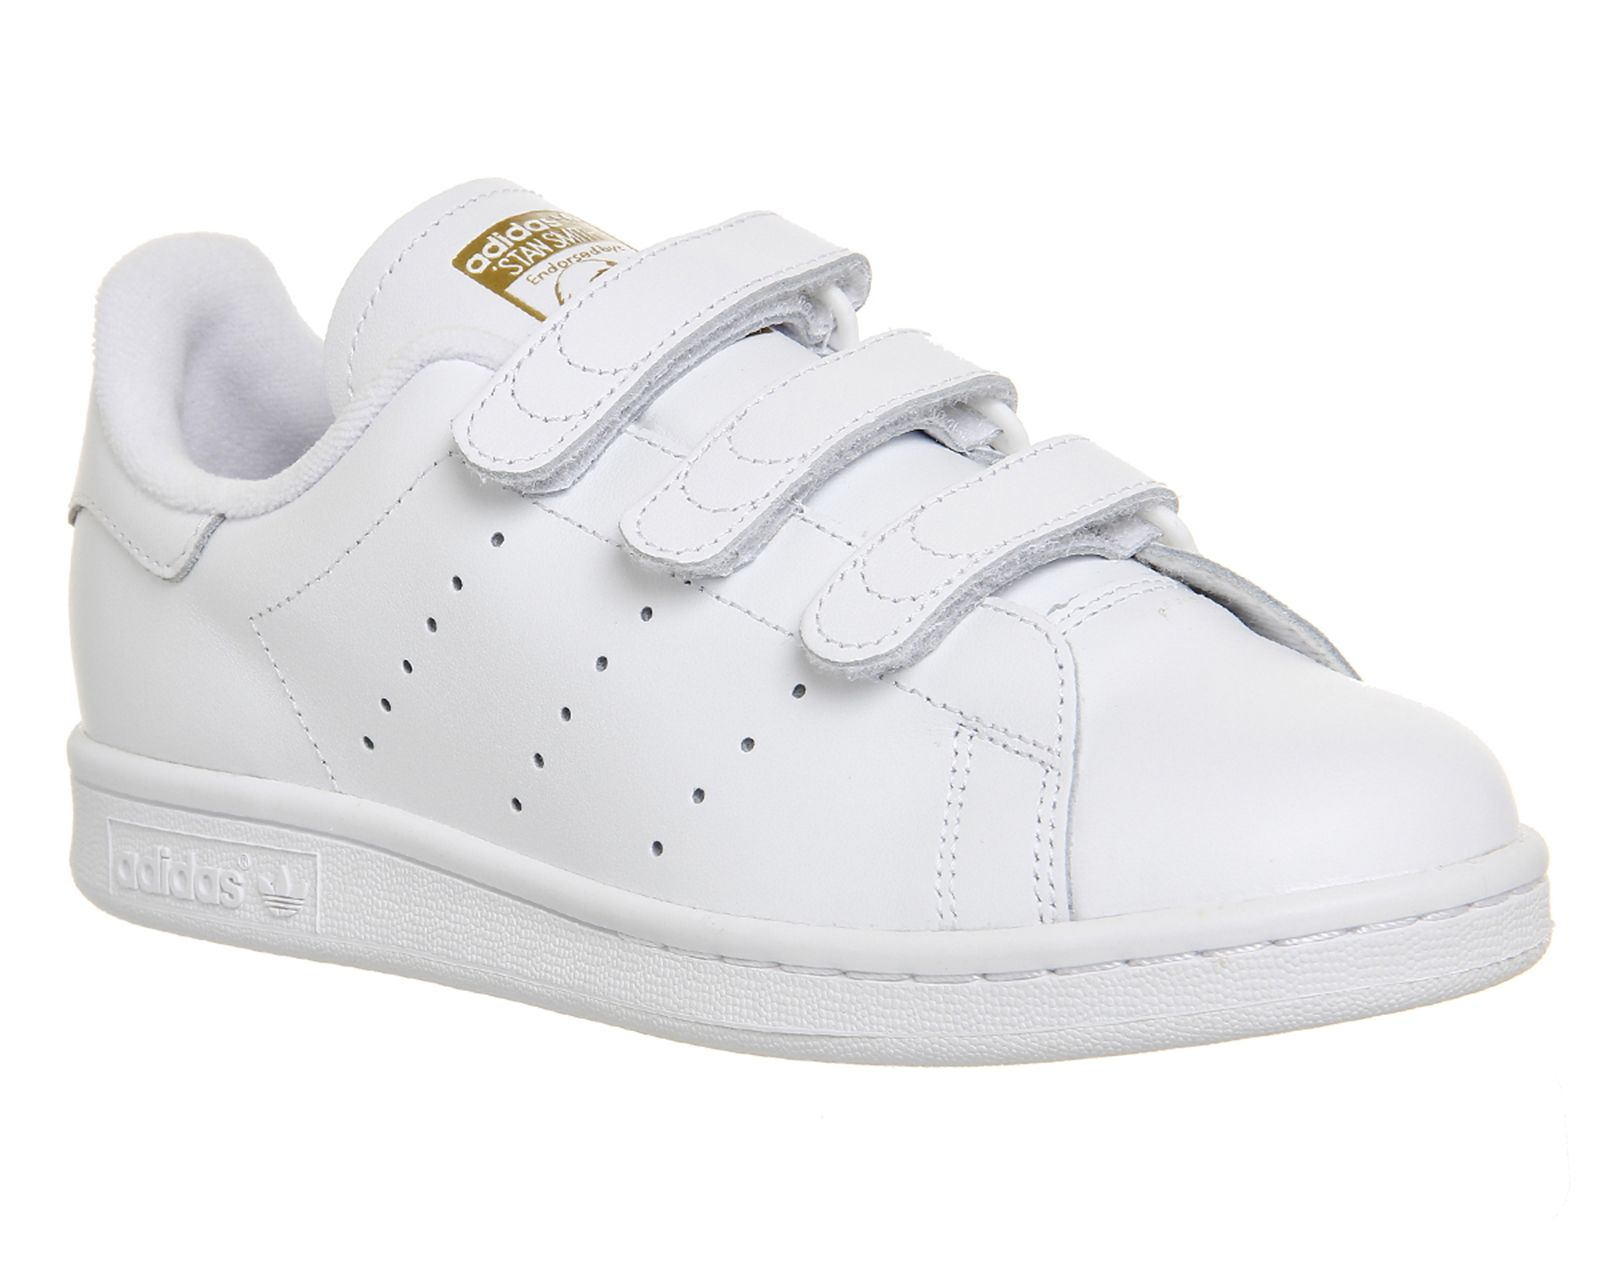 f78a98cce7b Stan Smith Cf | Fashion | Adidas shoes, Adidas velcro shoes, Adidas ...